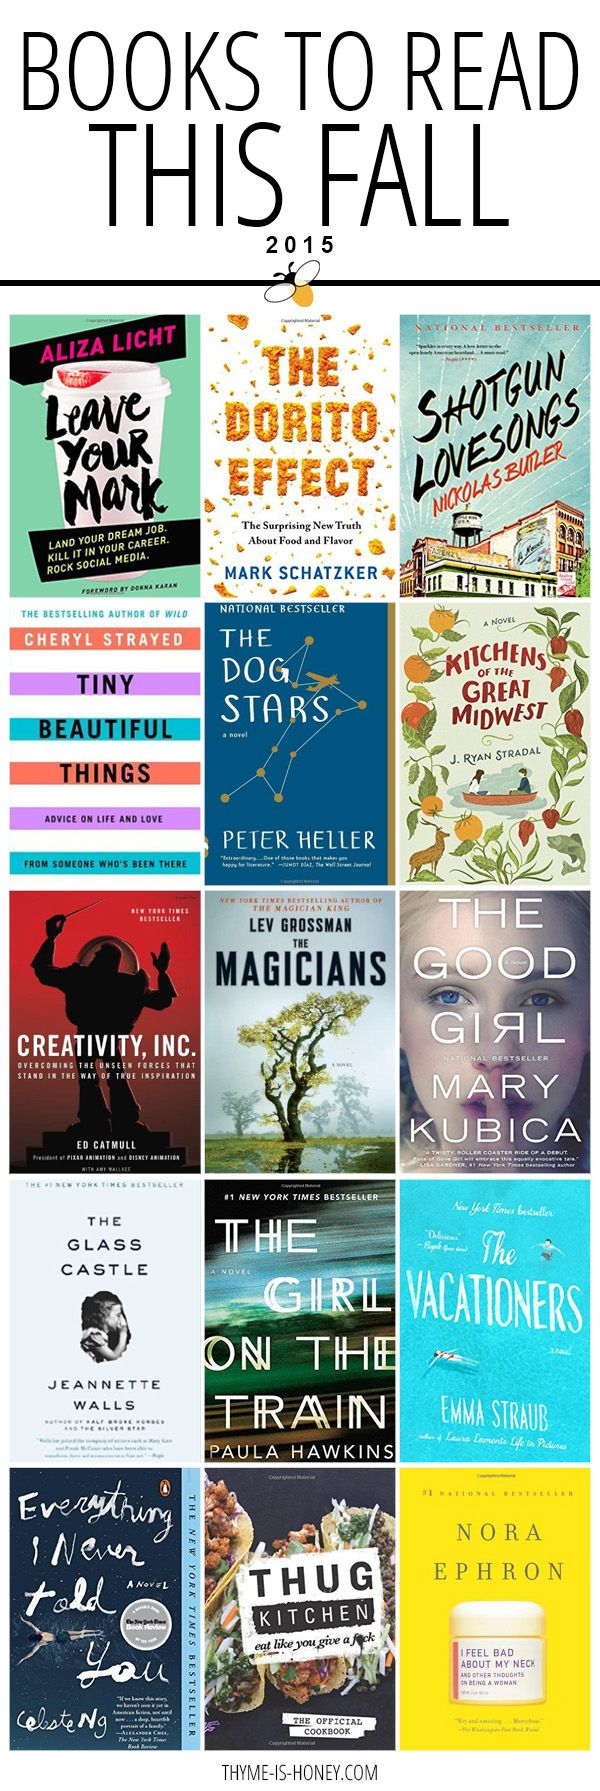 Time to cozy up with a book! 15 great books to read Fall 2015.